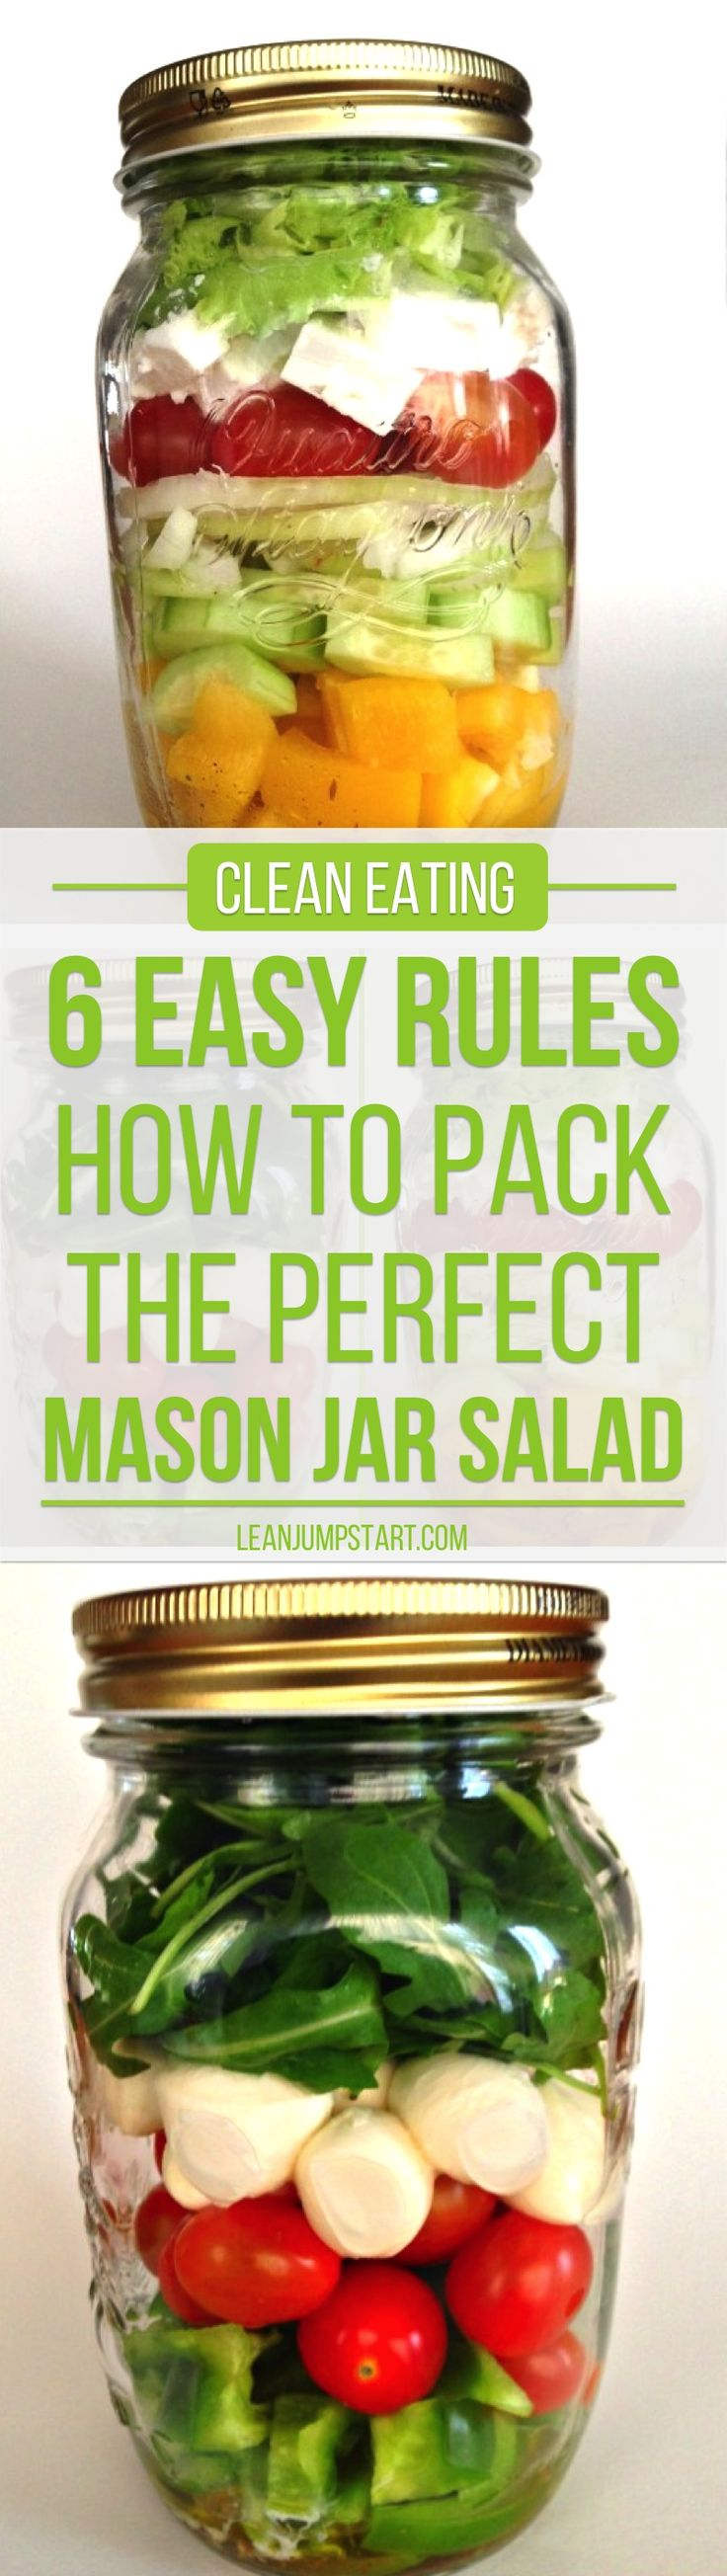 A mason jar salad offers a wonderful, time saving way to prepare a tasty, clean eating meal that can last up to five days. Click through!